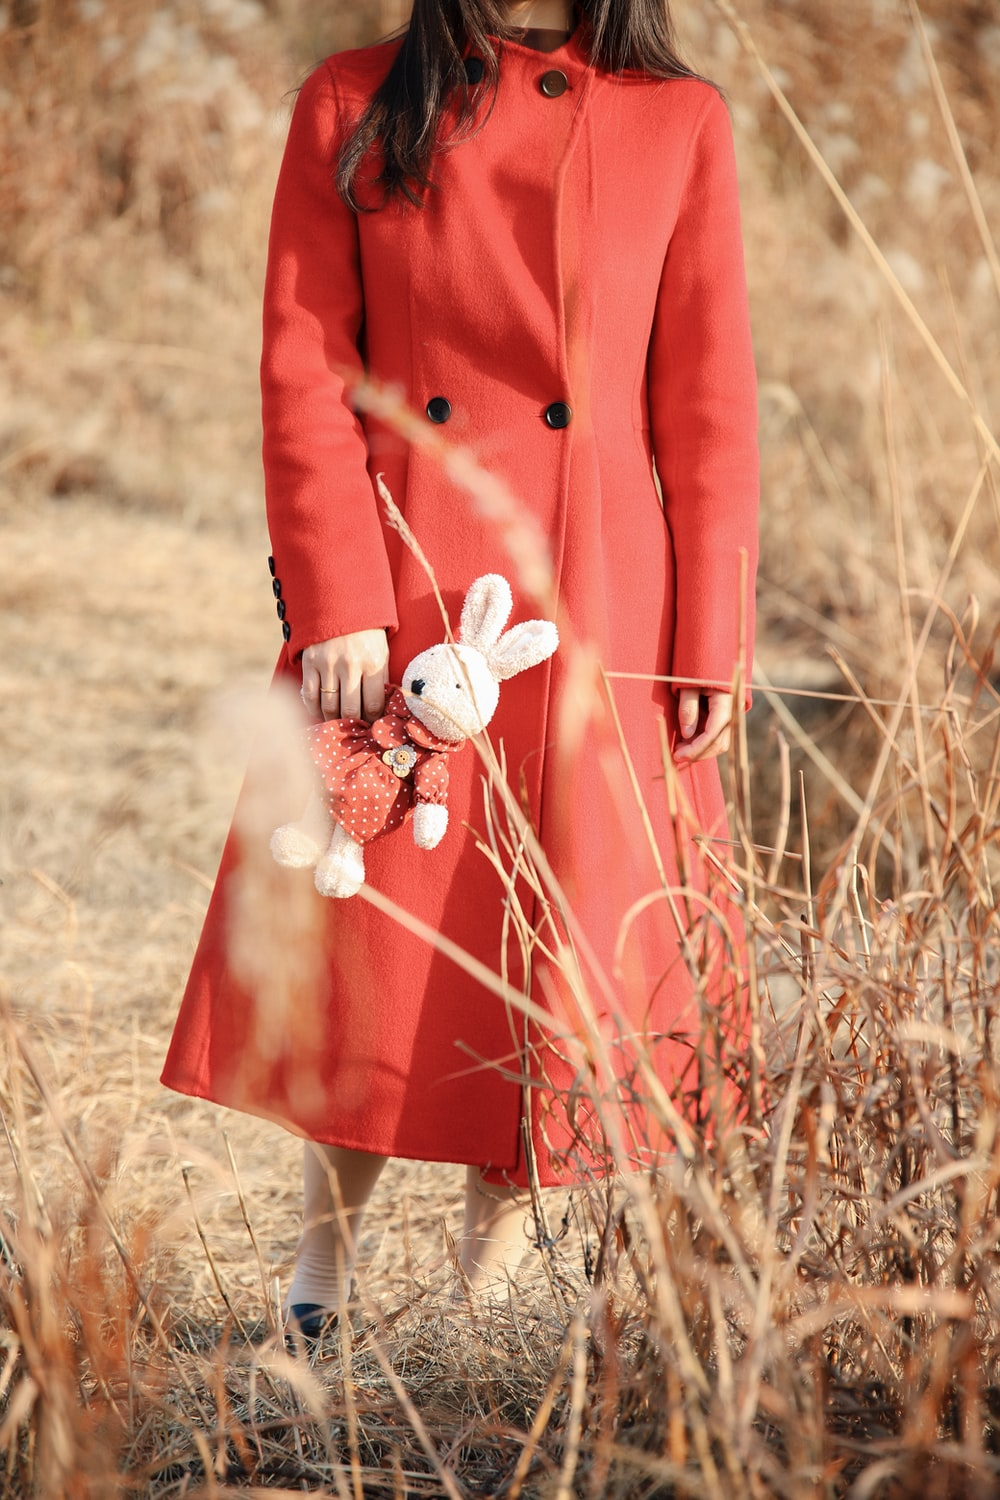 woman in red coat holding bunny plush toy